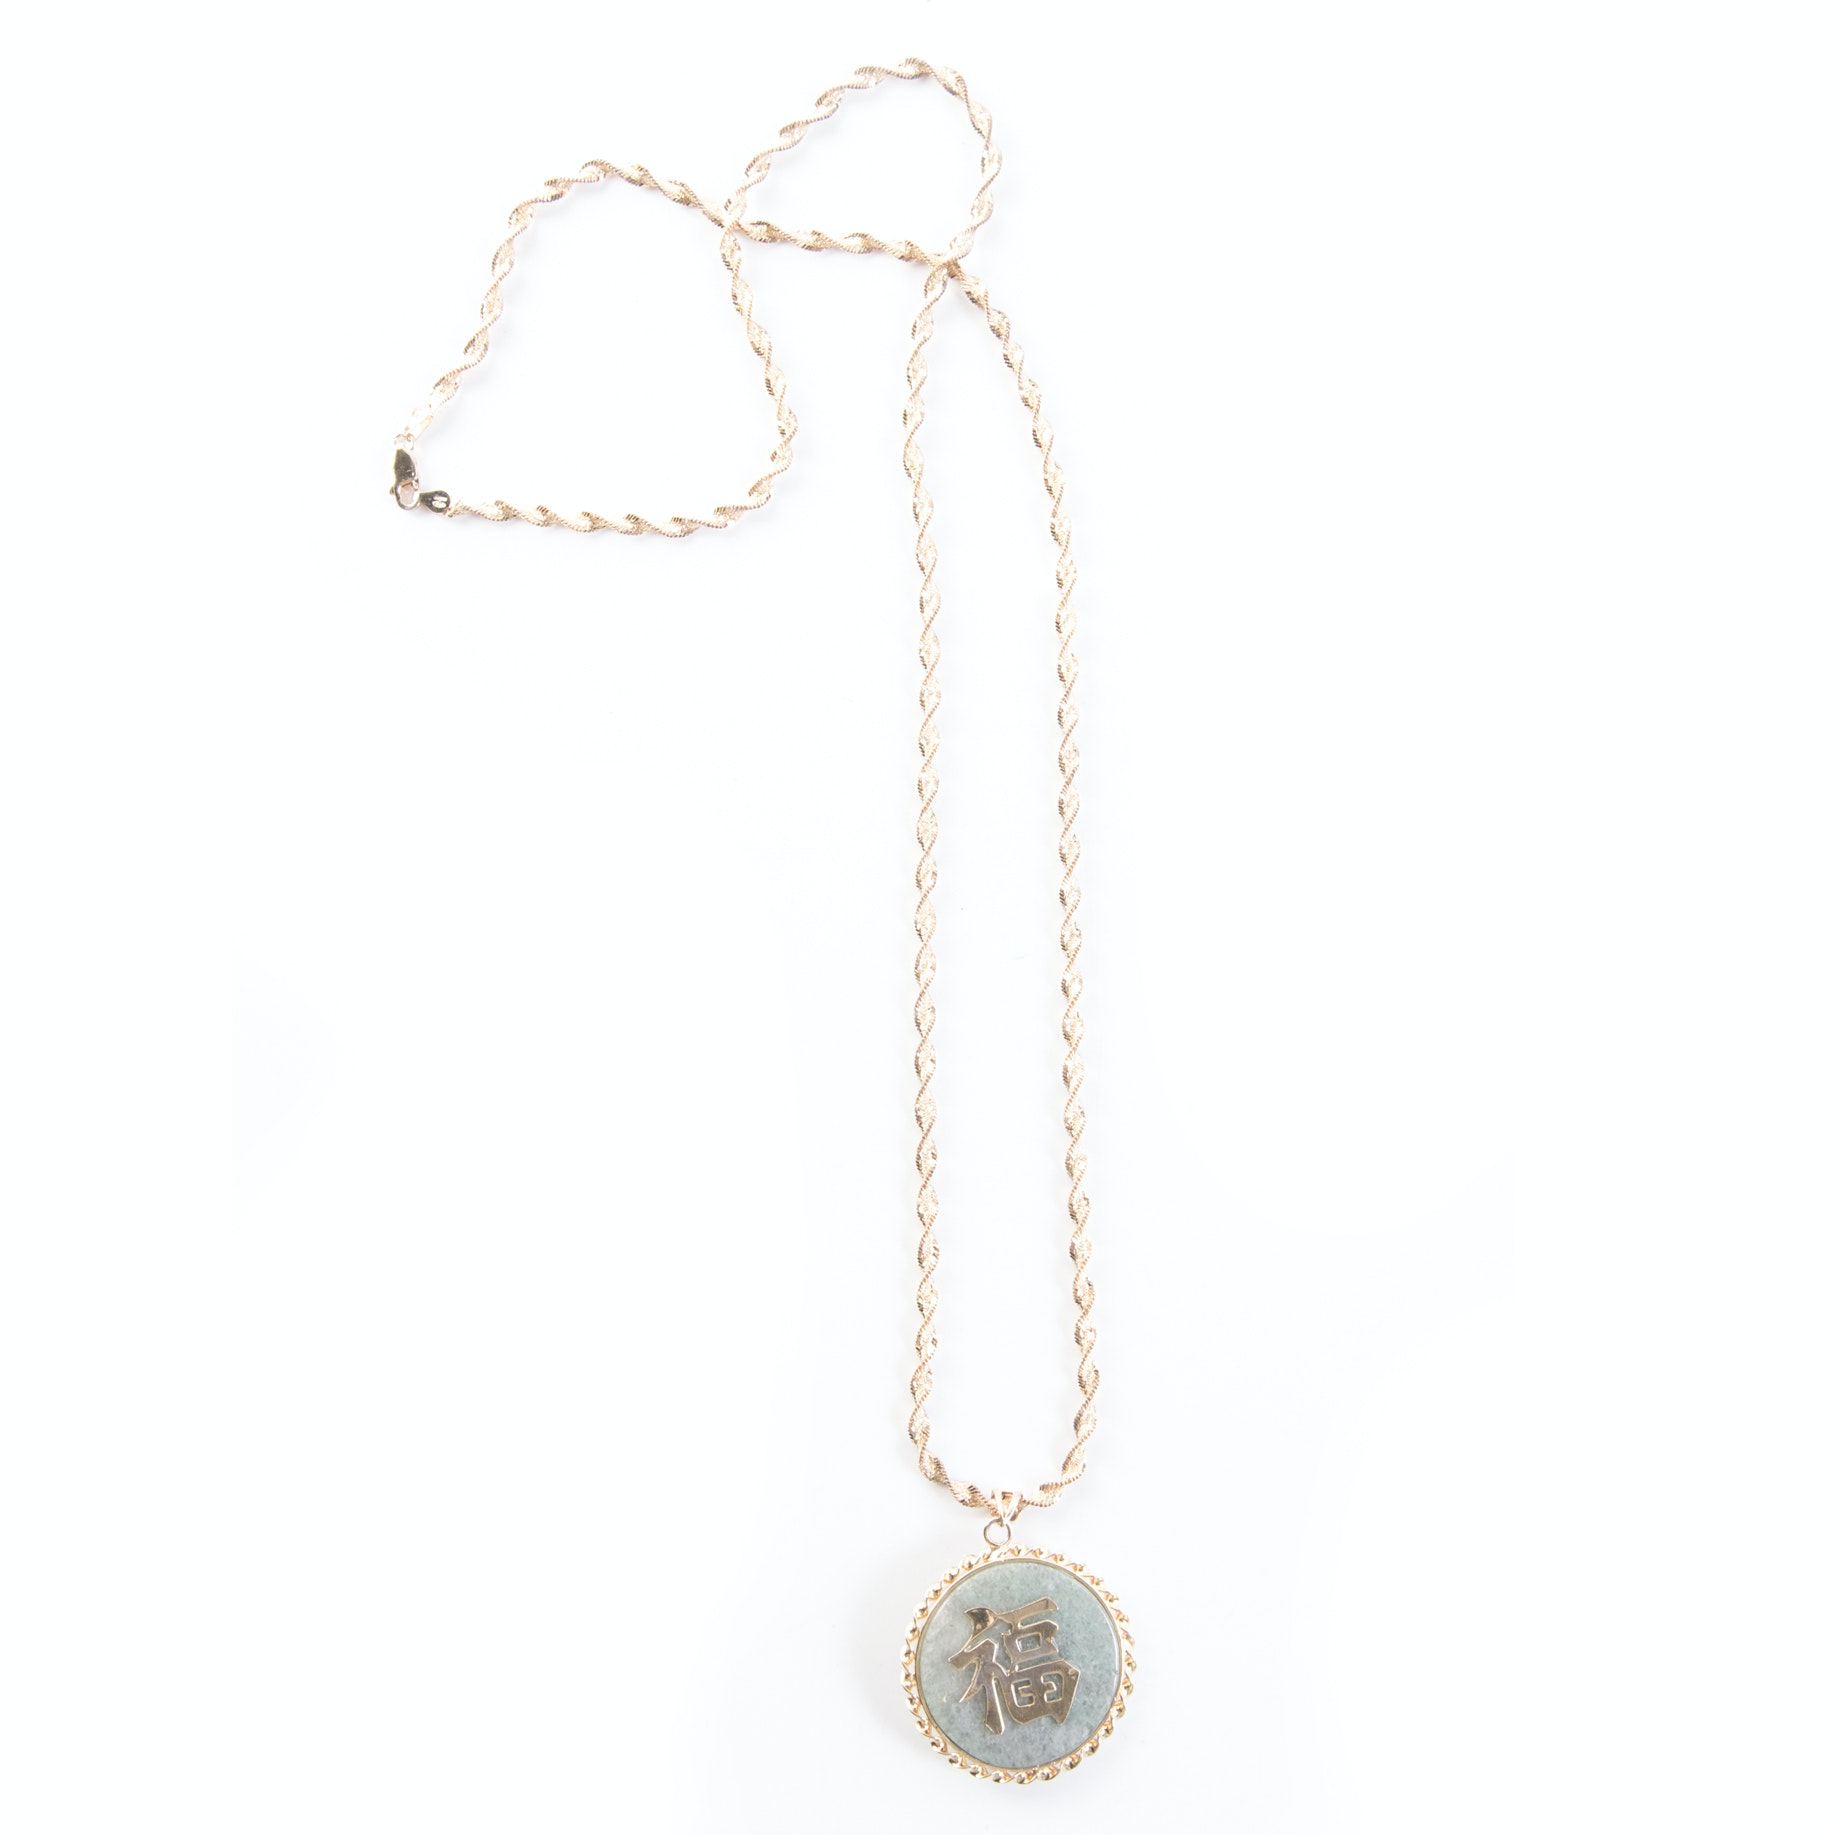 Gold Wash on Sterling Silver, Green Quartz Chinese Pendant Necklace